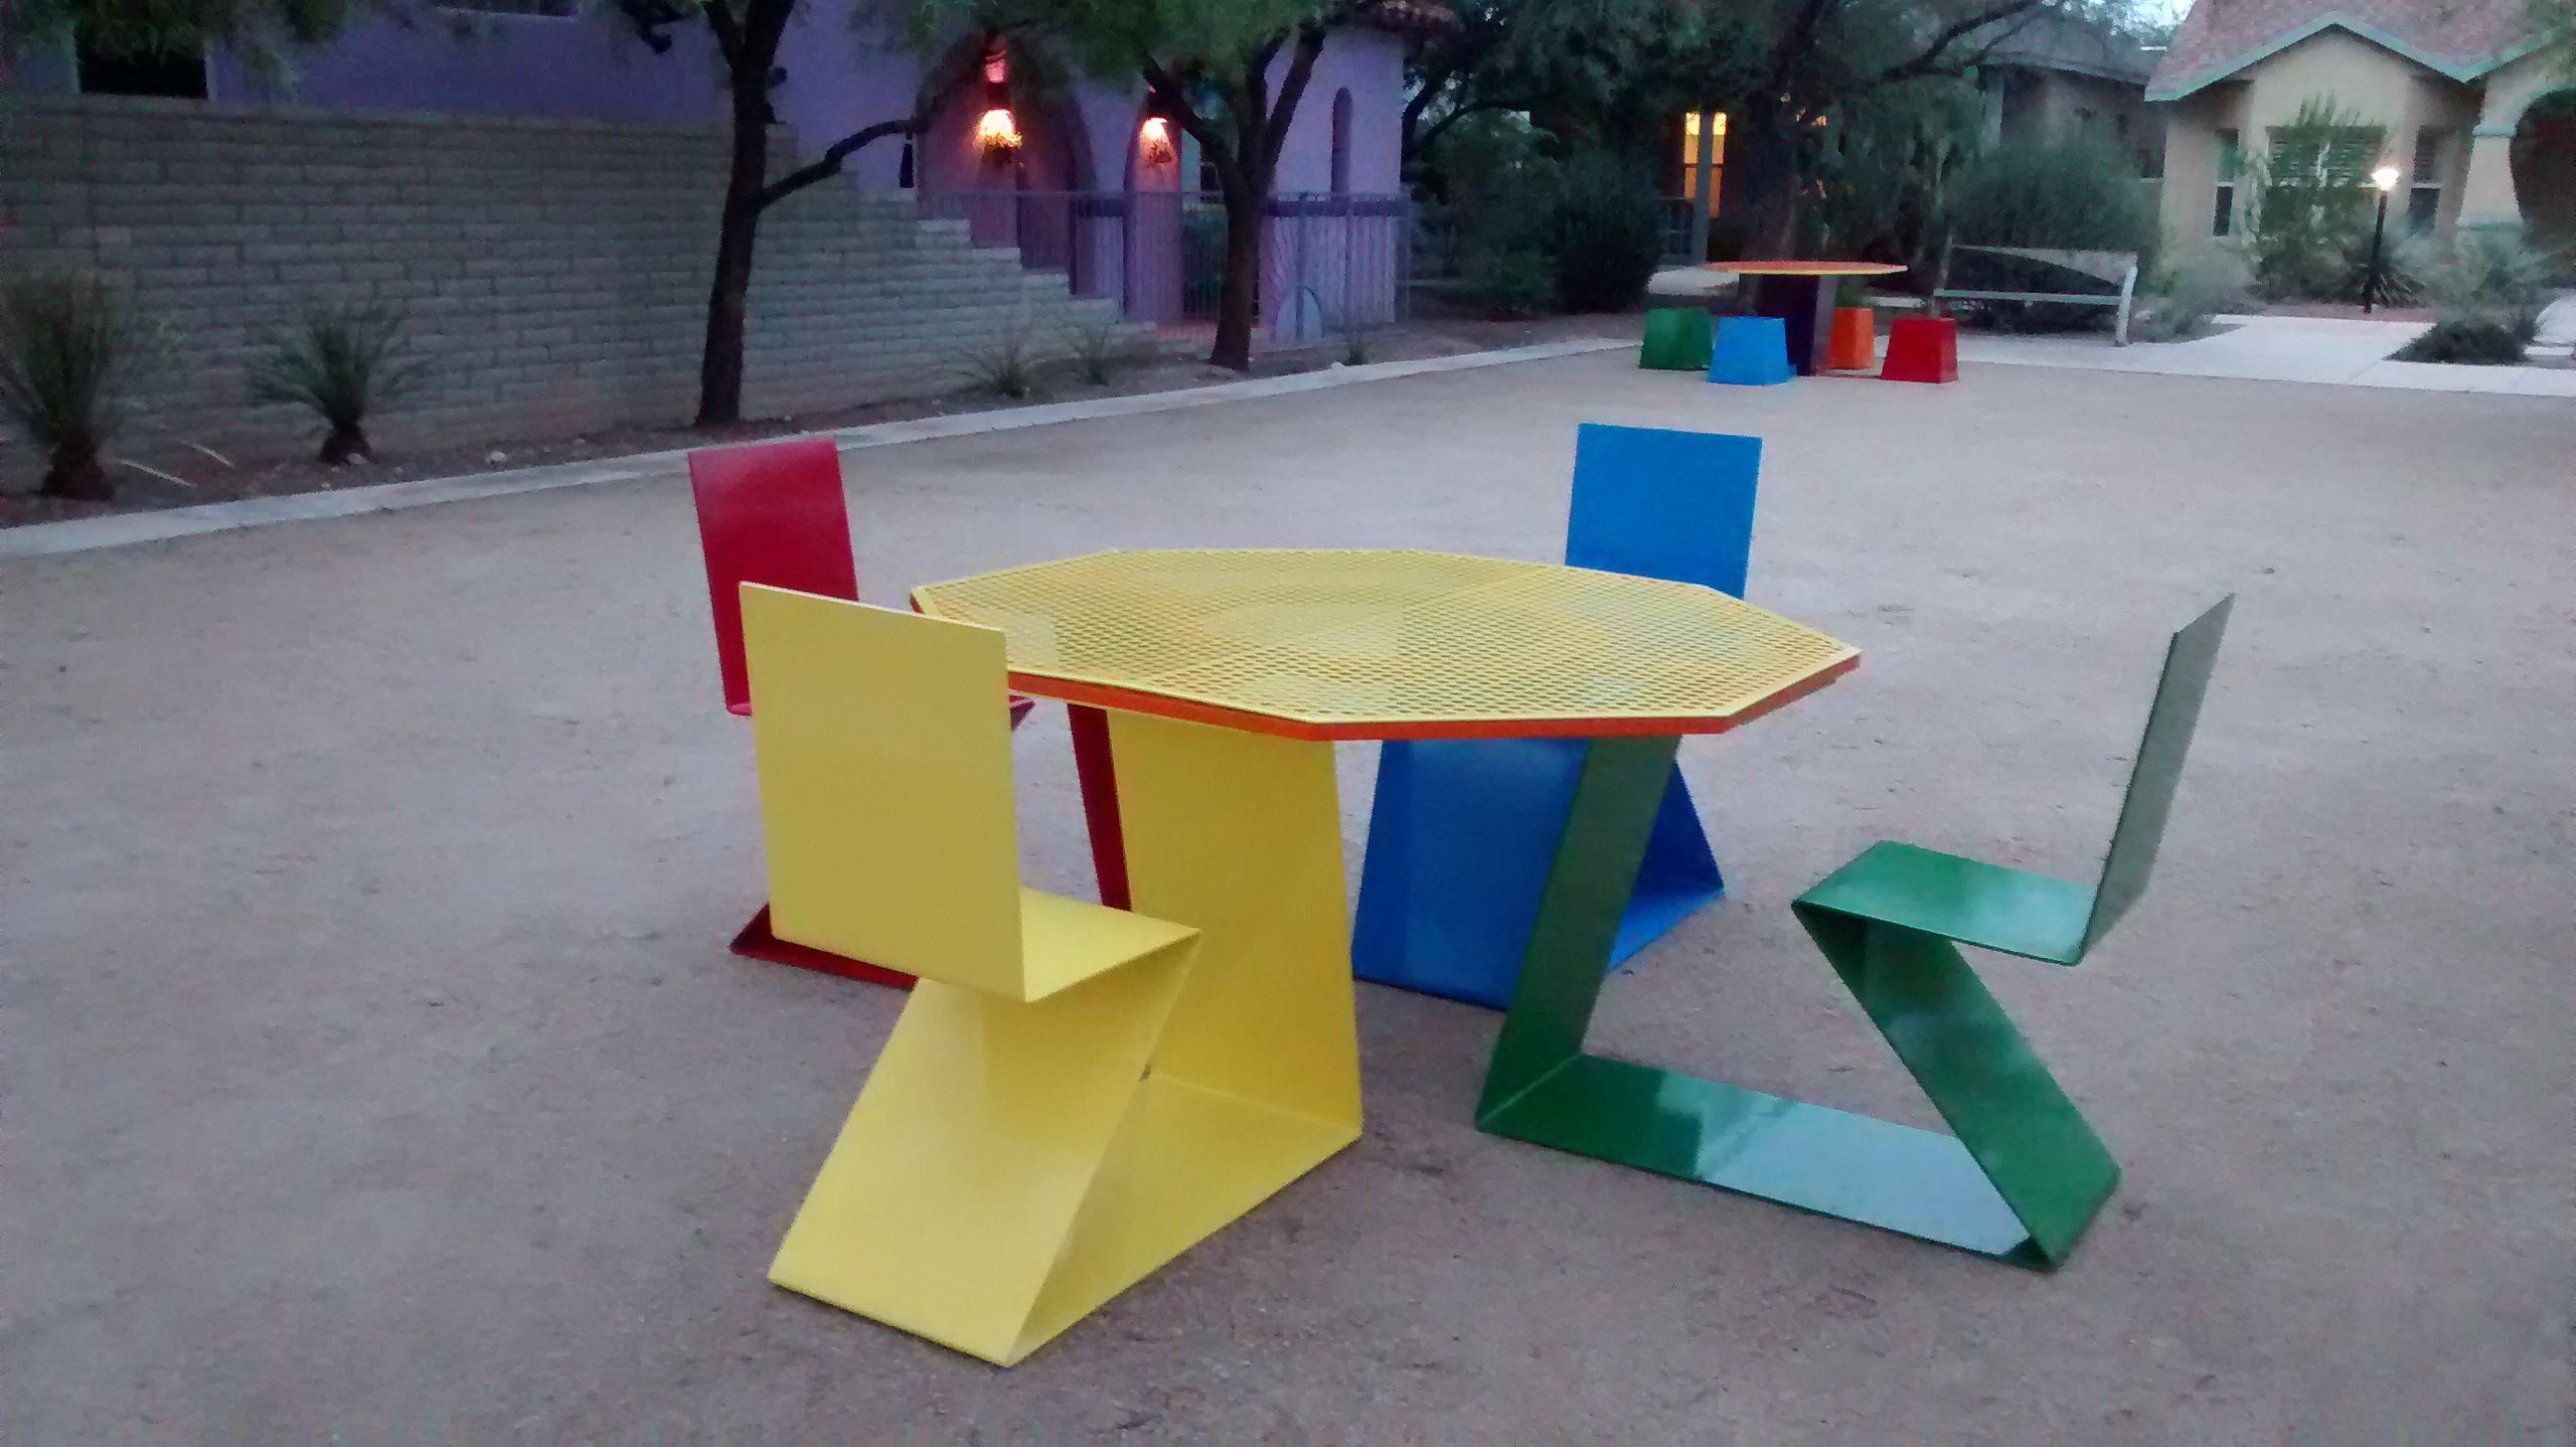 Powder coated steel table and chairs for armory park neighborhood tucson az installed september 2015